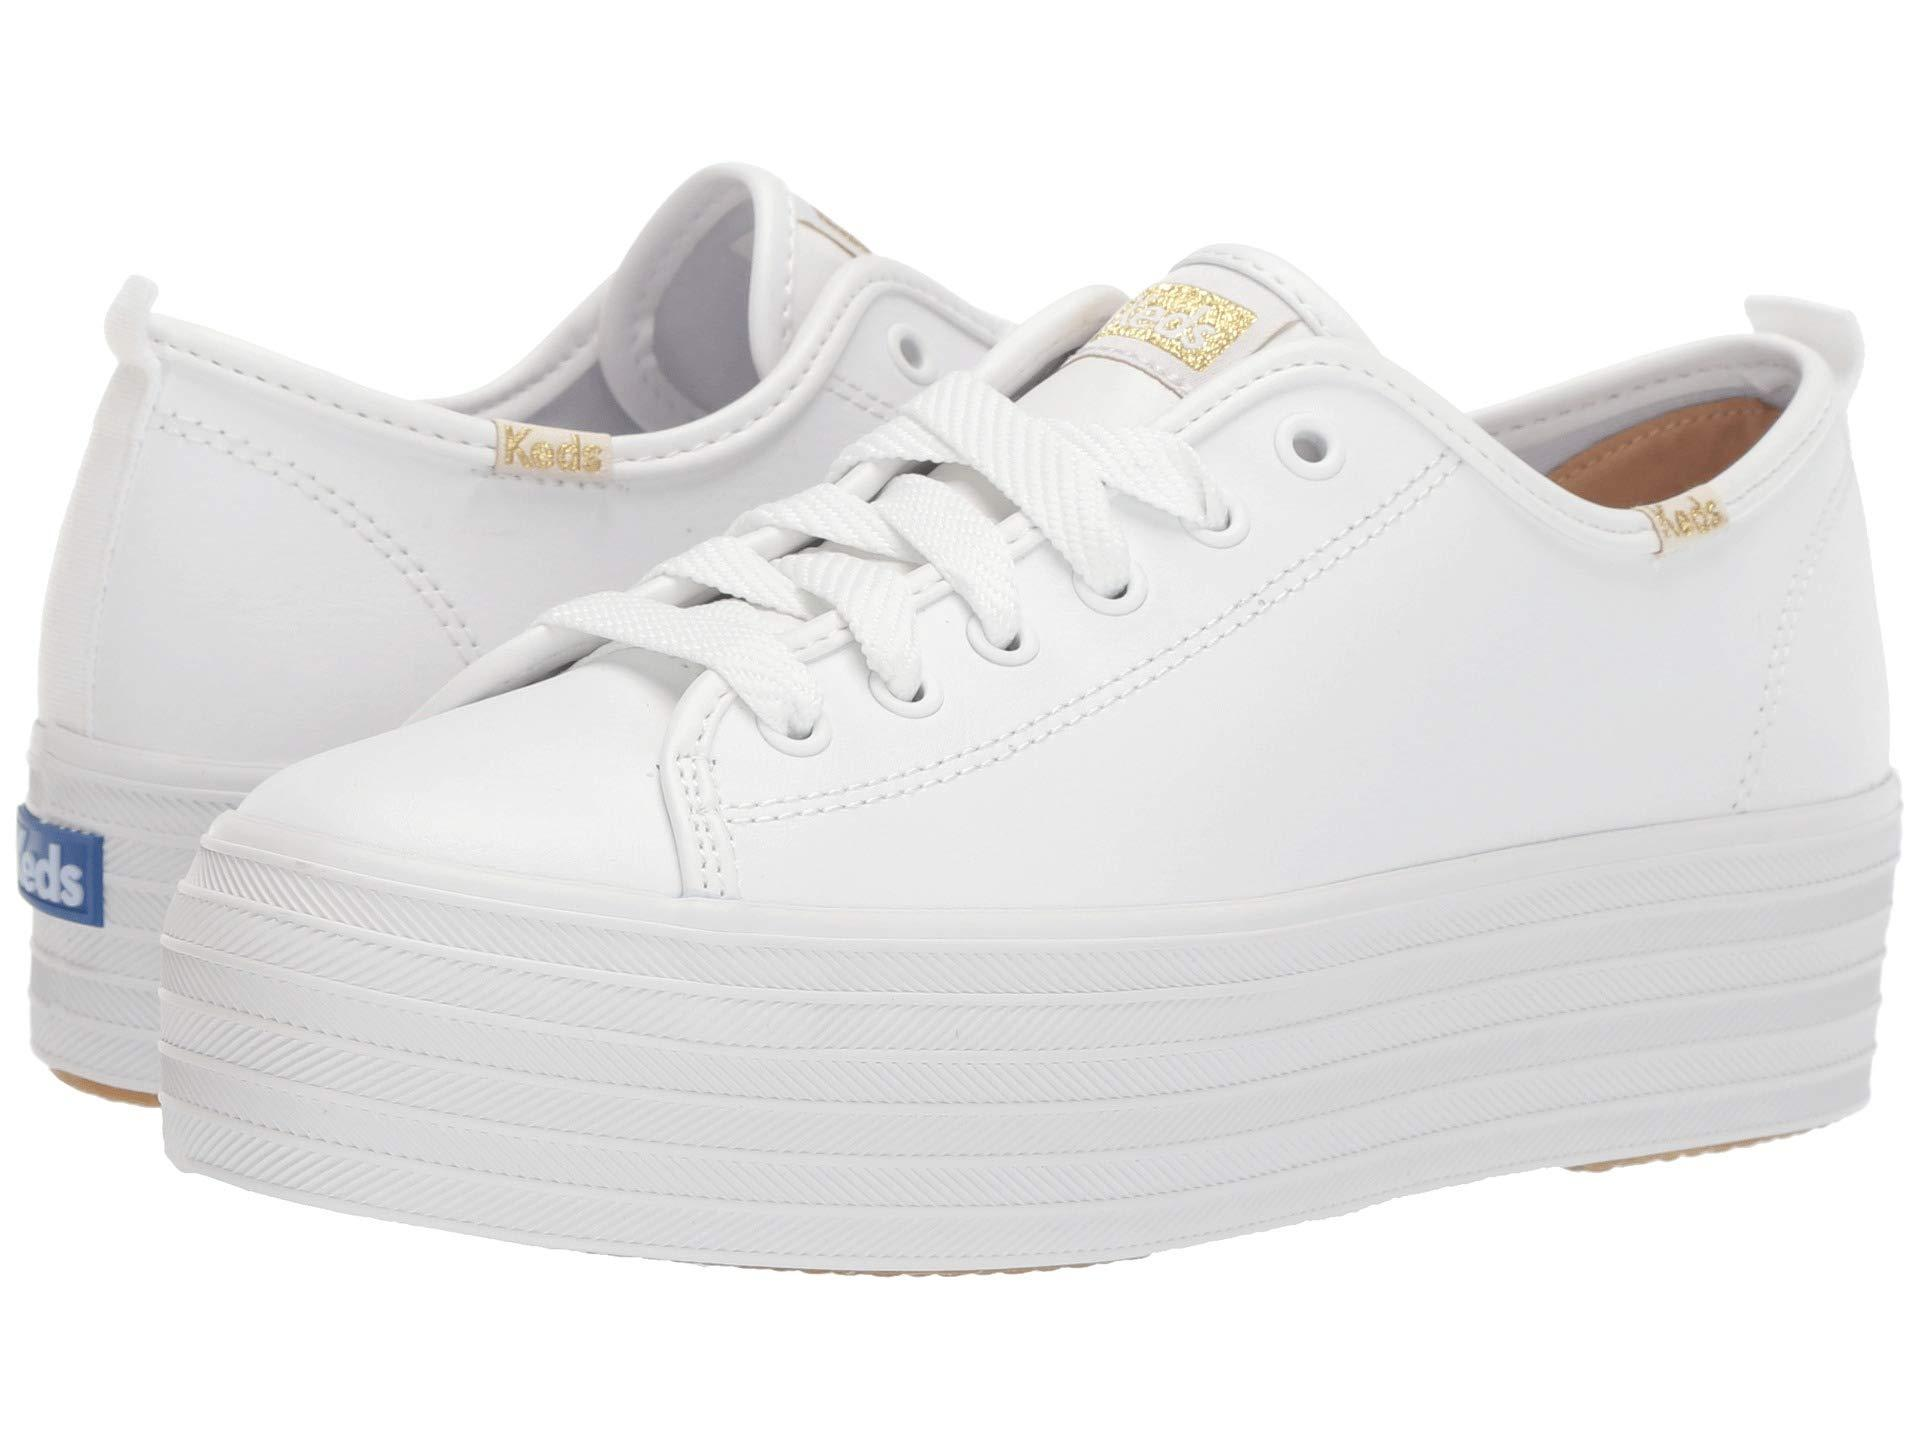 Keds Triple Up Leather in White - Lyst